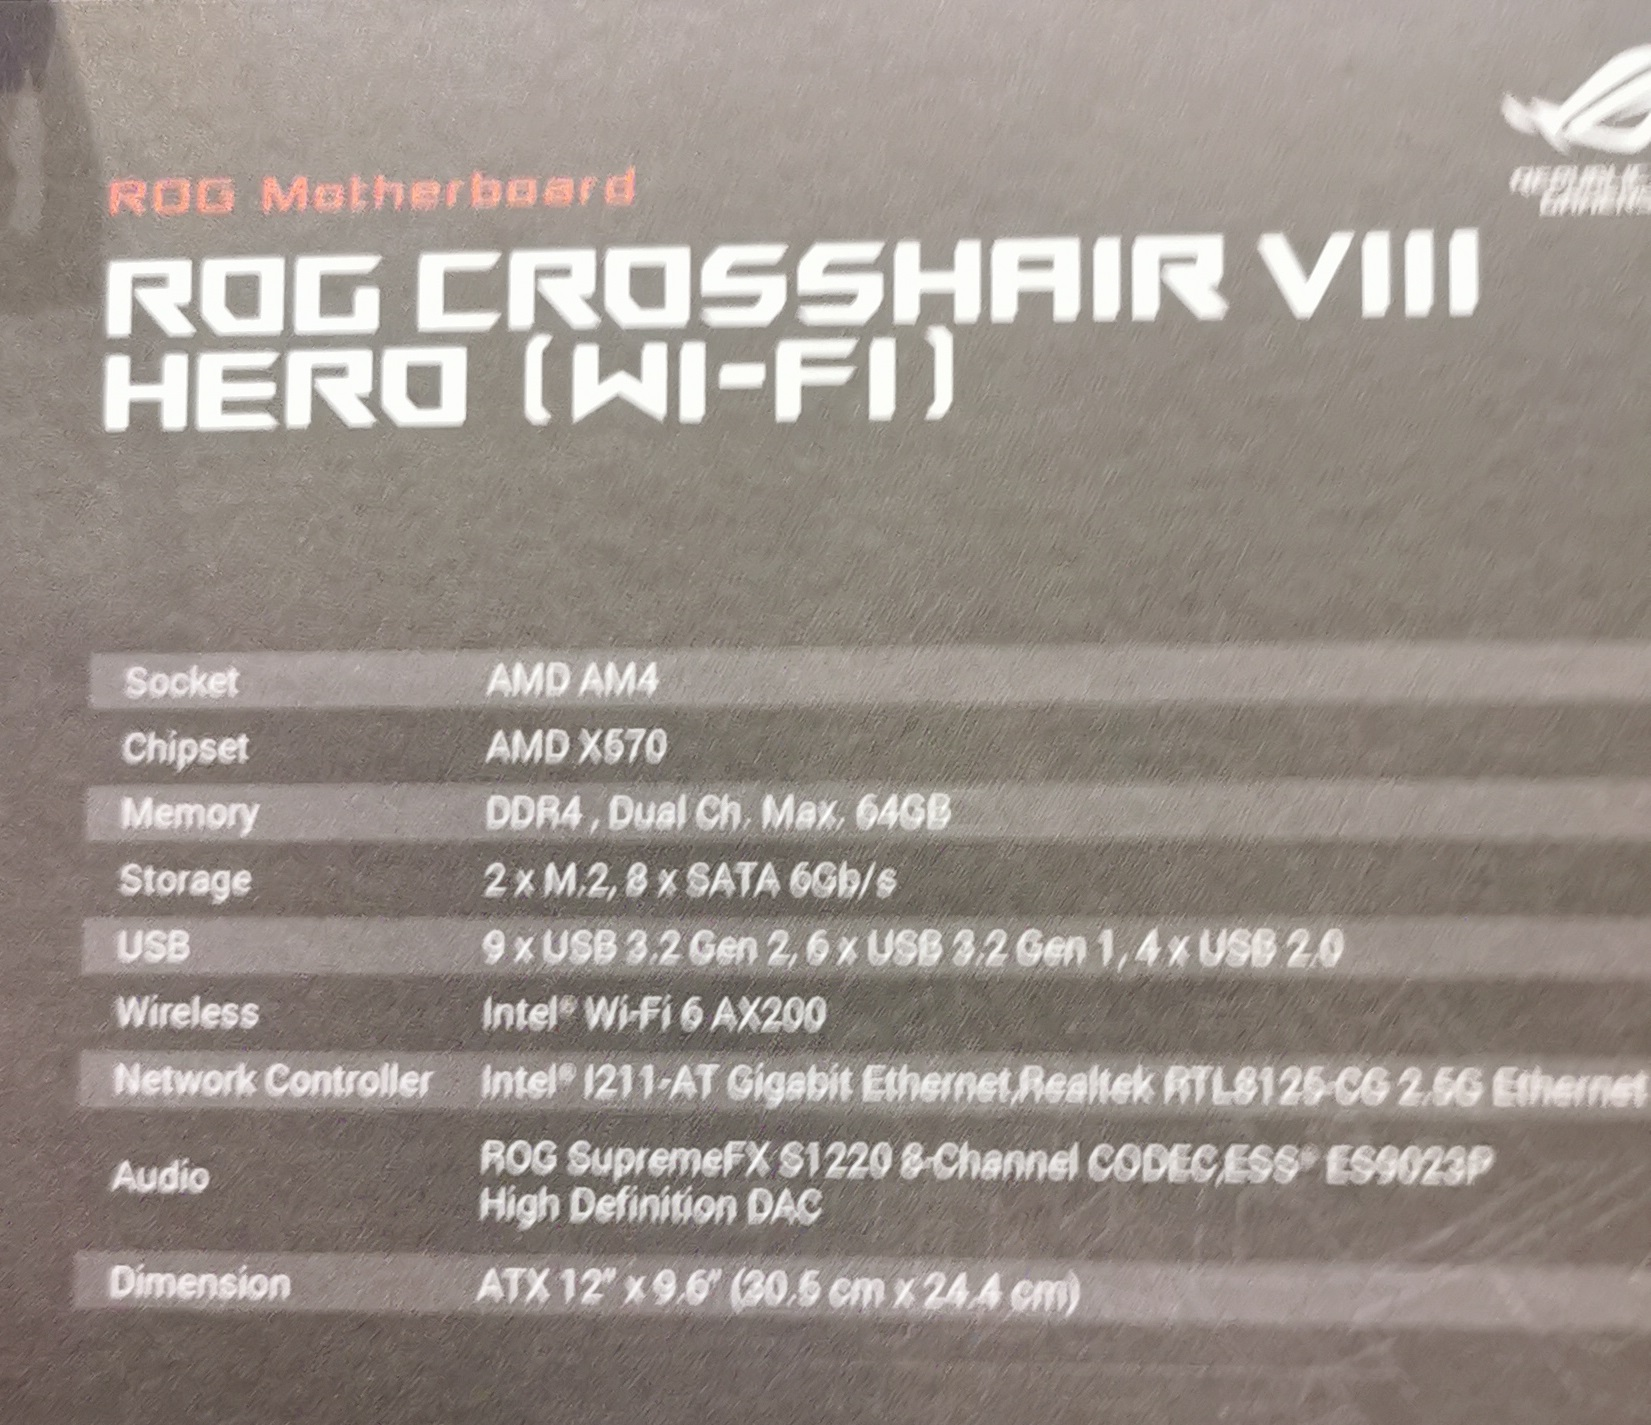 The ASUS ROG Crosshair VIII Hero: With or Without Wi-Fi 6